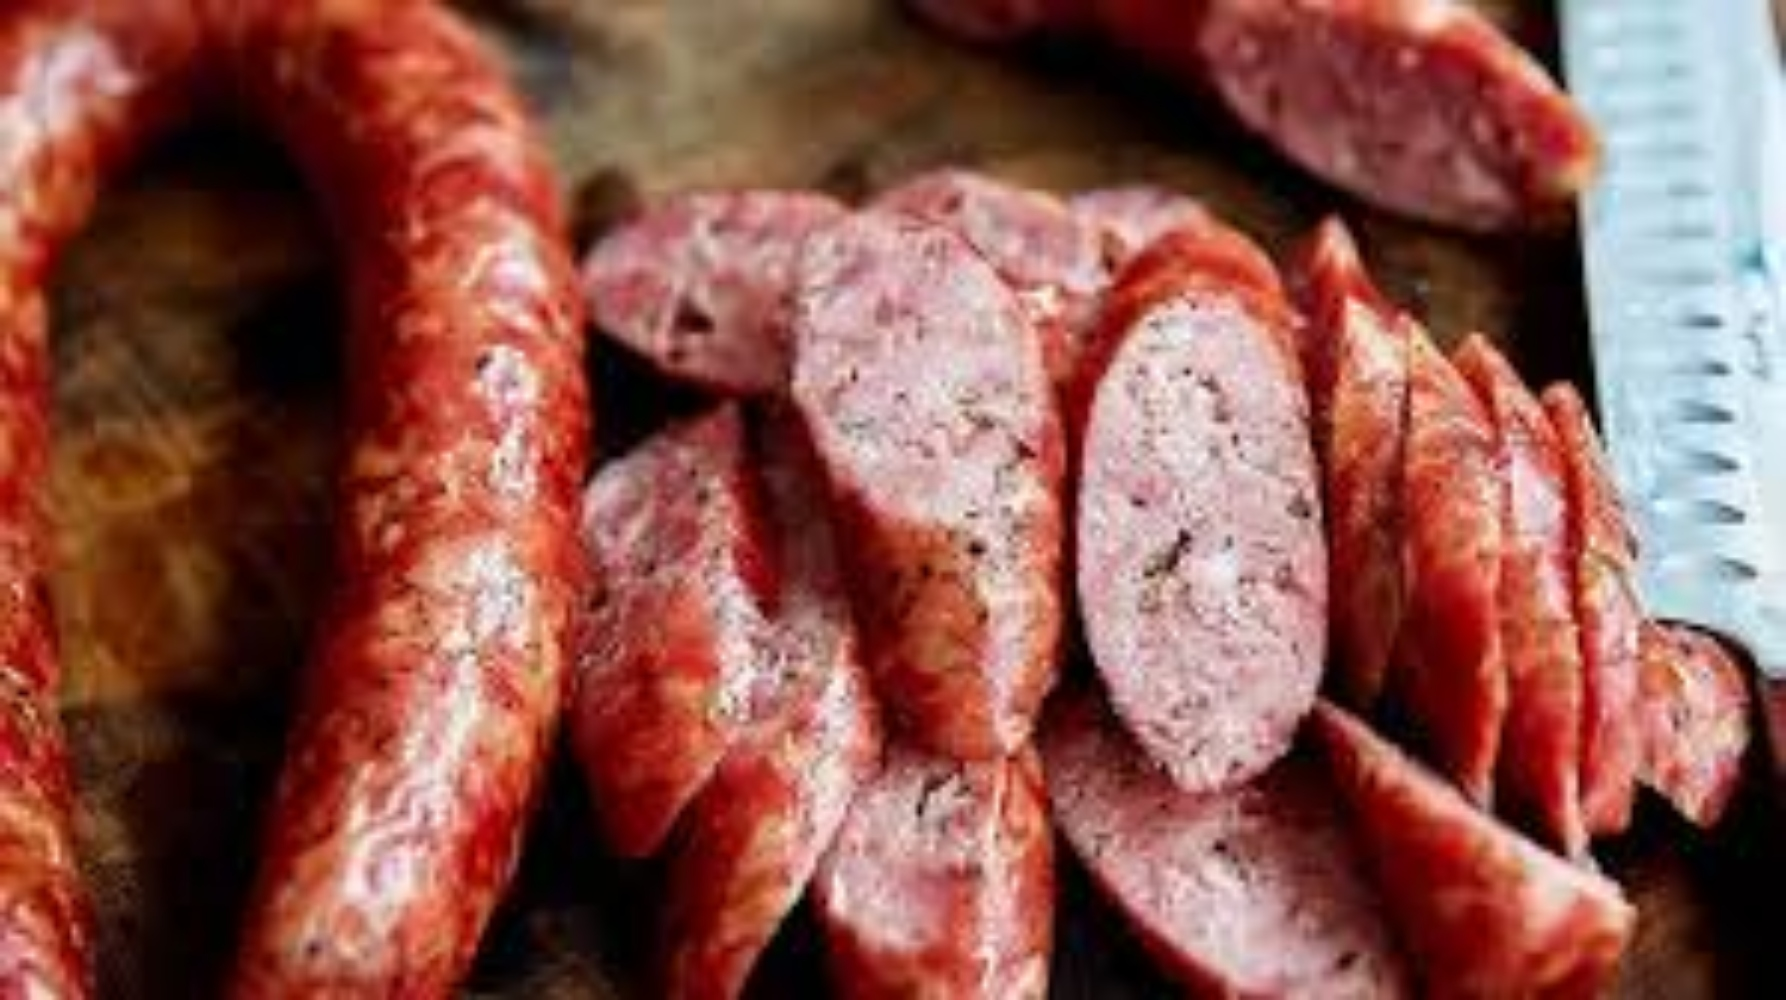 How to cook sausages in the oven